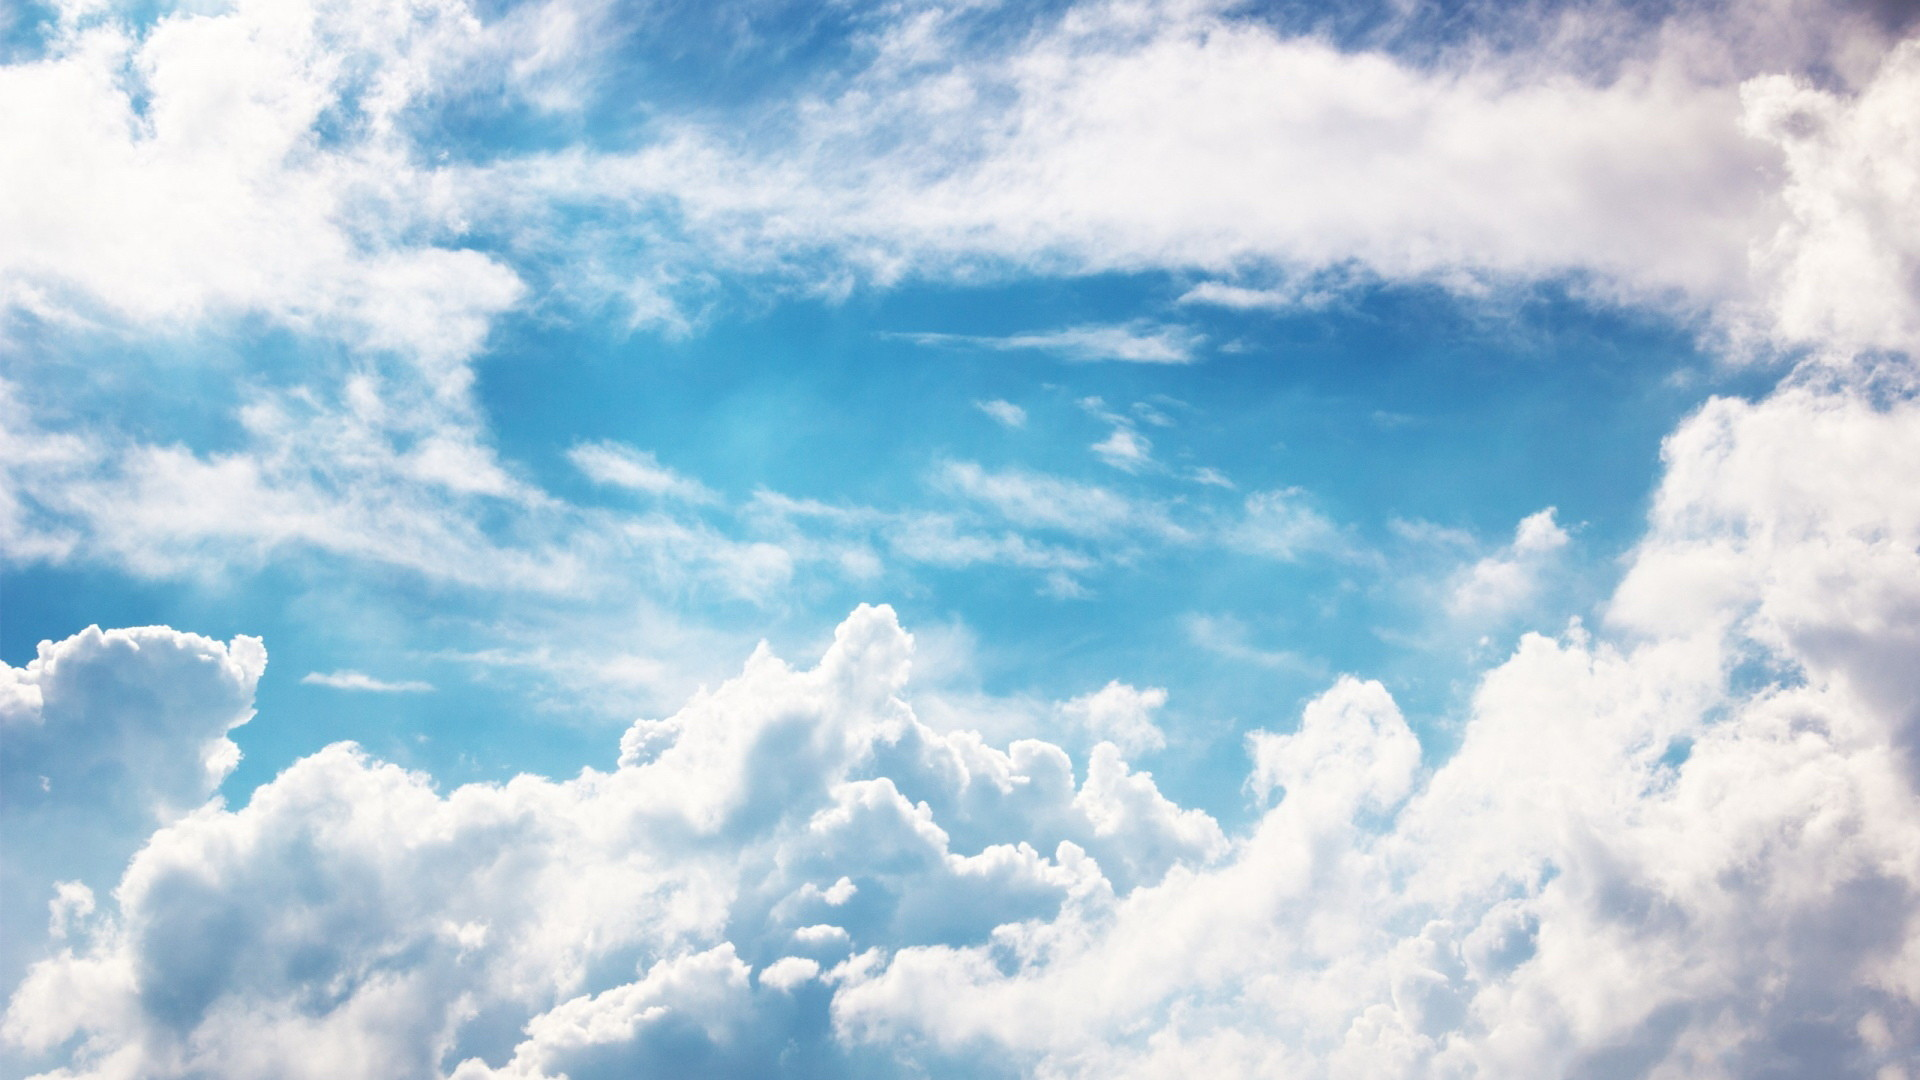 Wallpaper Hd Collection Download Clouds Wallpaper 65 Images